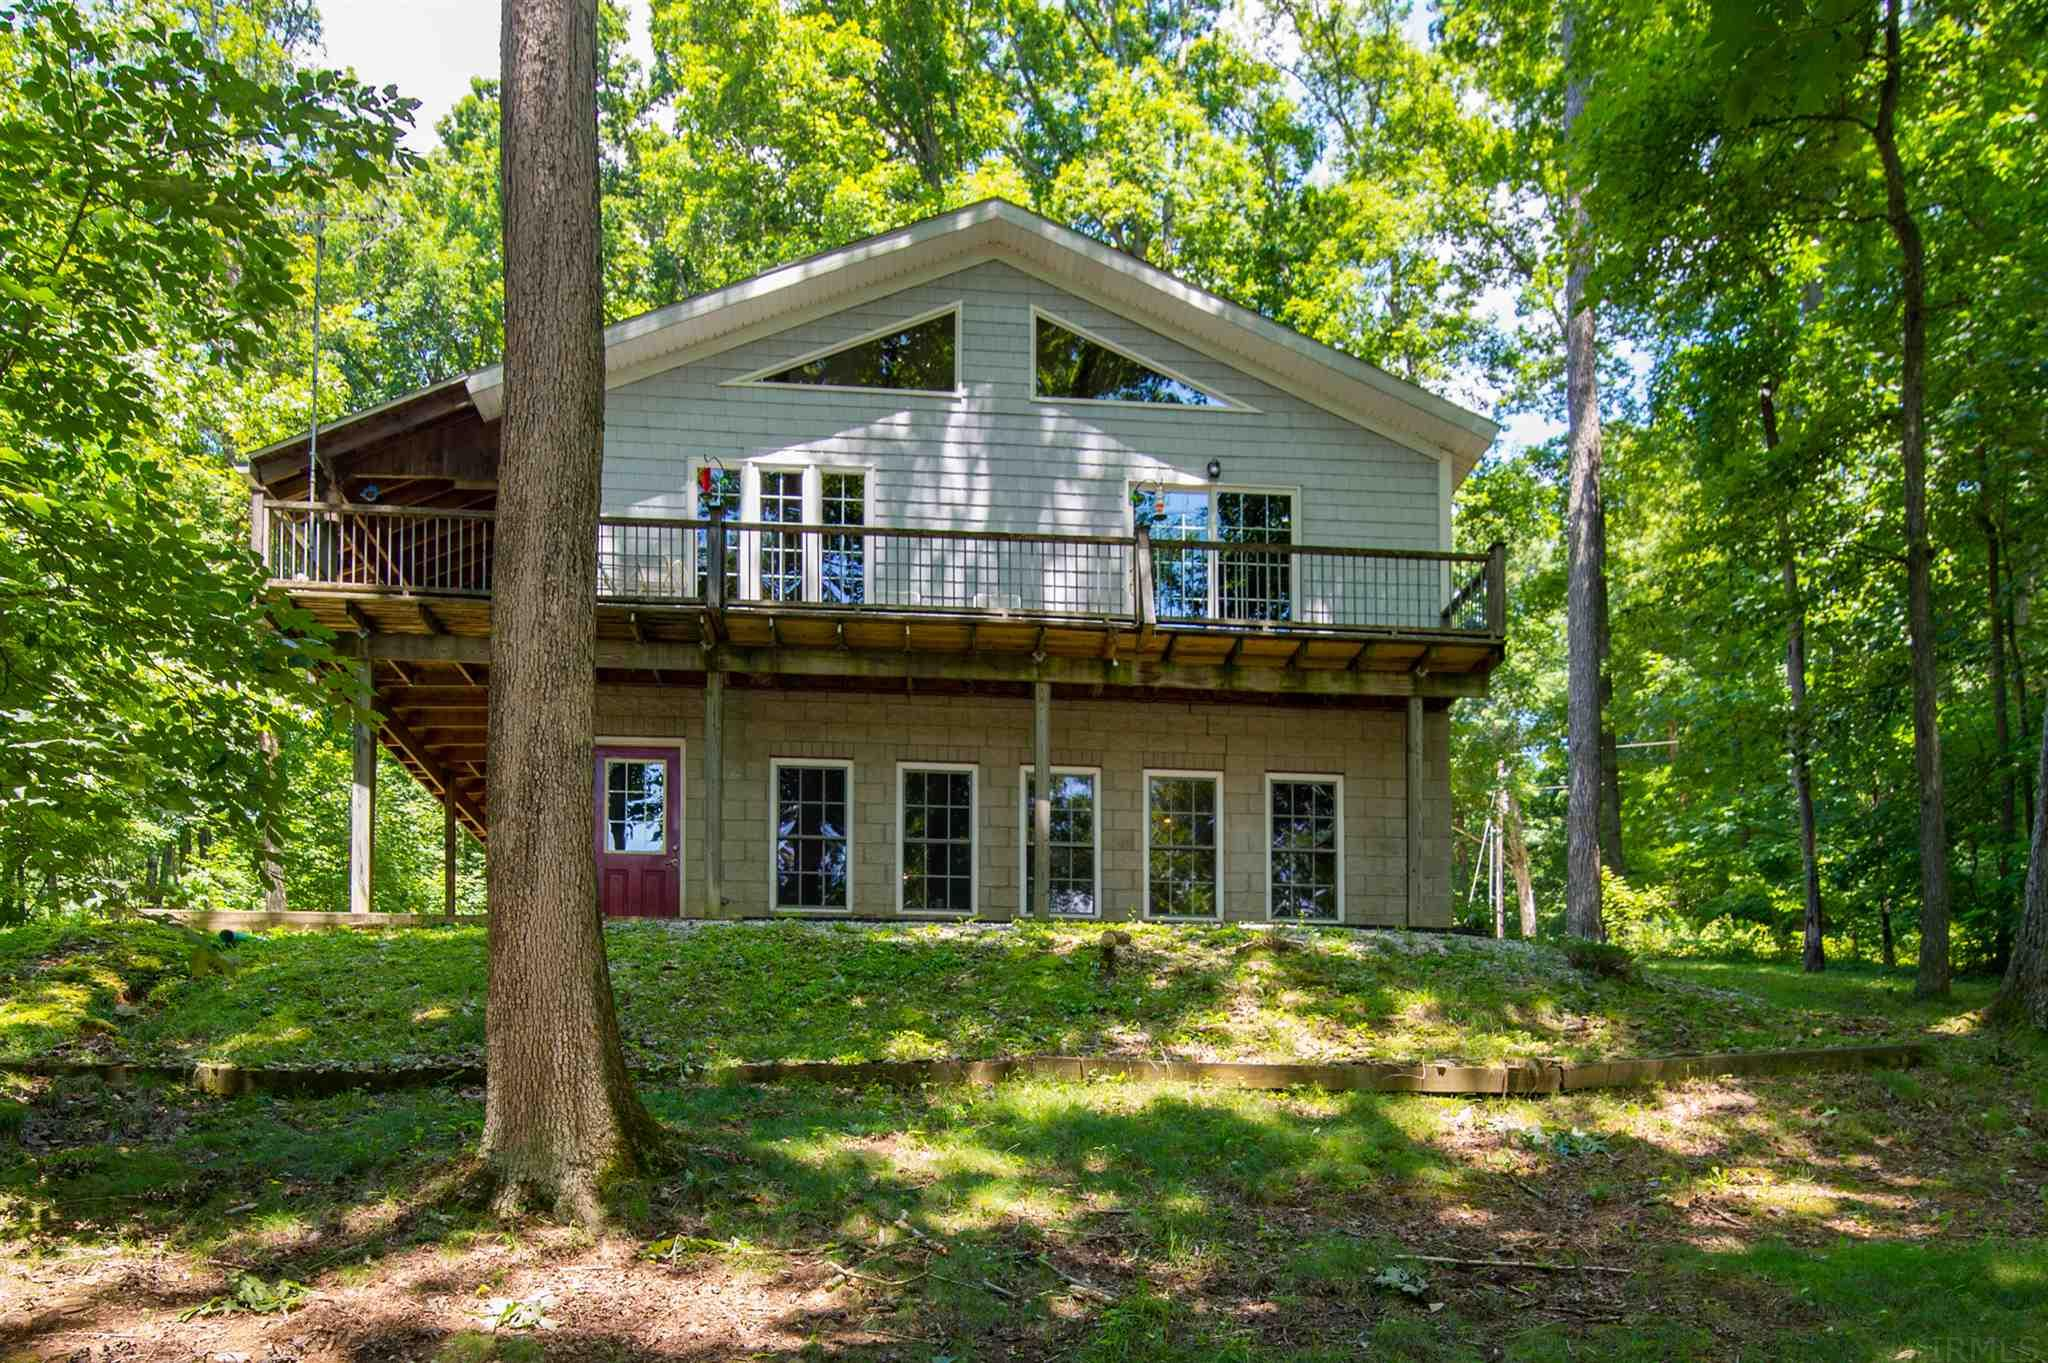 "This unique 2400 sq. ft. Post and Beam or Timber Frame home is nestled in the woods by 65 acre Lake Helmerich.  The exposed beams inside the 3 bedroom 2 bath give a feeling of quality construction.  Home is super insulated with walls and roof covered in 4'X 8' sheet panels with 4 "" of Styrofoam sandwiched inside. The open concept construction helps to highlight the large oak beamed interior with the cathedral ceilings. Exterior walls are vinyl shakes.  The hardwood floors are all solid teak and doors are custom solid oak. Kitchen counters are solid granite and all appliances are included except the gas range which will be replaced with a new range and the washer and dryer and the upright freezer .Check out the huge island in the kitchen and the custom cabinetry.     Windows give splendid views out into the woods and to the lake with your own boat dock and pontoon boat ready to launch. The wood stove on the main level serves as a secondary heat source if so desired. The S and W sides of the home have 76 feet of porches with over half covered.  White tail deer and wild turkey can often be observed as they make their way to the lake for a cool drink. Fishing has been good.  The 18 X 24 shed is added to the back of the 3 car garage. The attached shop and garage  have heat and AC.  The gated community provides good security. Your village has 160 acres of recreational water in 8 lakes for your enjoyment and 3 swimming pools. In spring time the village is ablaze with blooming red bud and dogwood trees and then fall gives us blazing maple tree foliage.  Get close to nature and make this your own nature sanctuary."